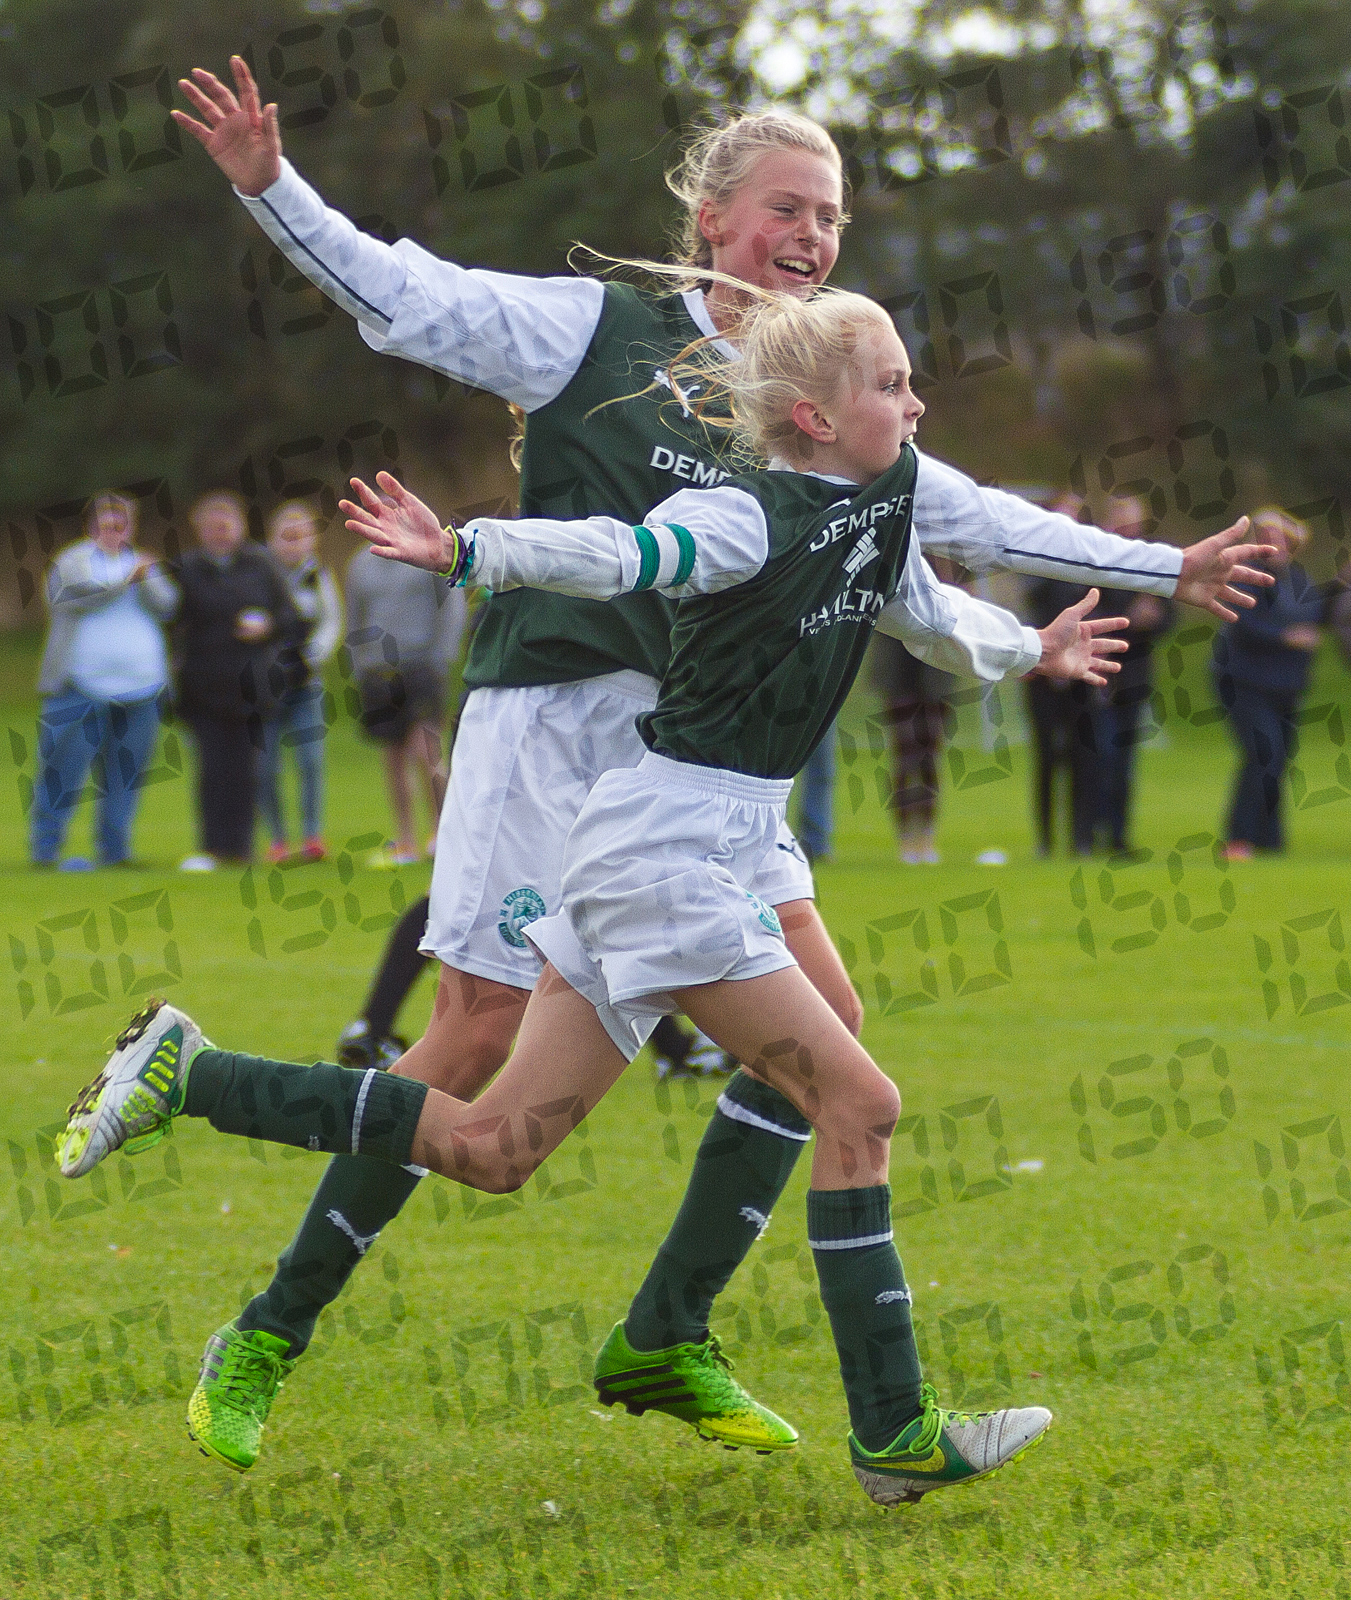 Hibs_v_Hearts_girls_13s-10.jpg